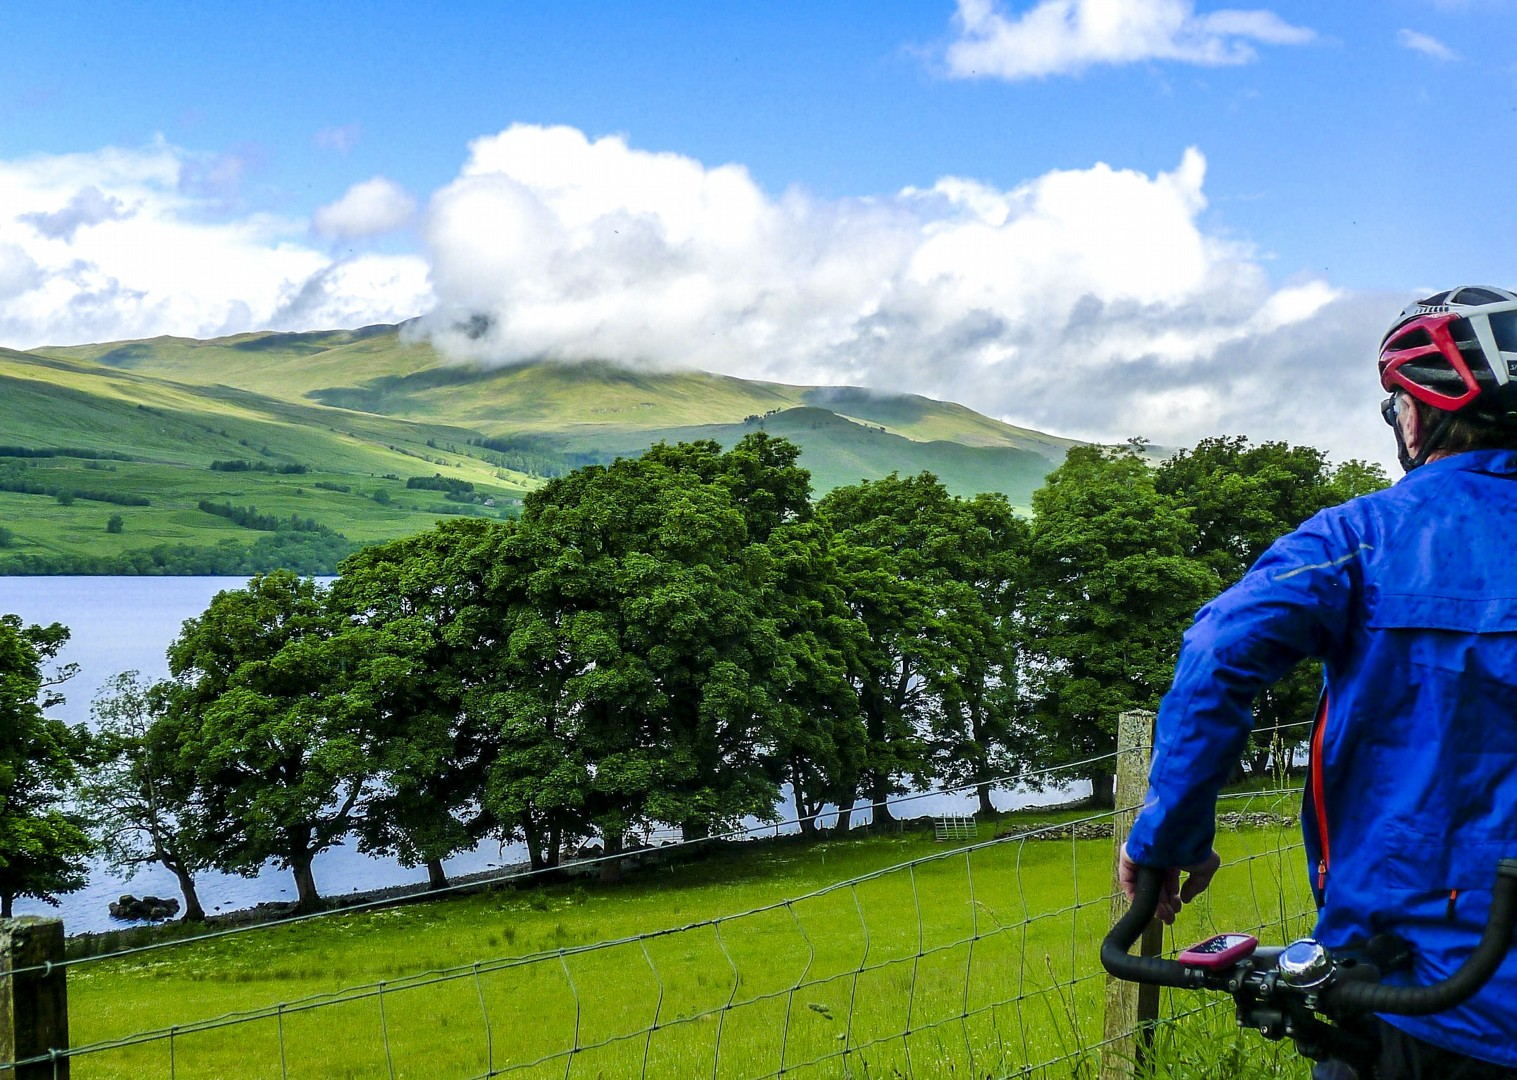 hills-cycling-fun-tour-scotland-uk-mountains-loch-lake-cycle-paths.jpg - UK - Scotland - Lochs and Glens - Leisure Cycling